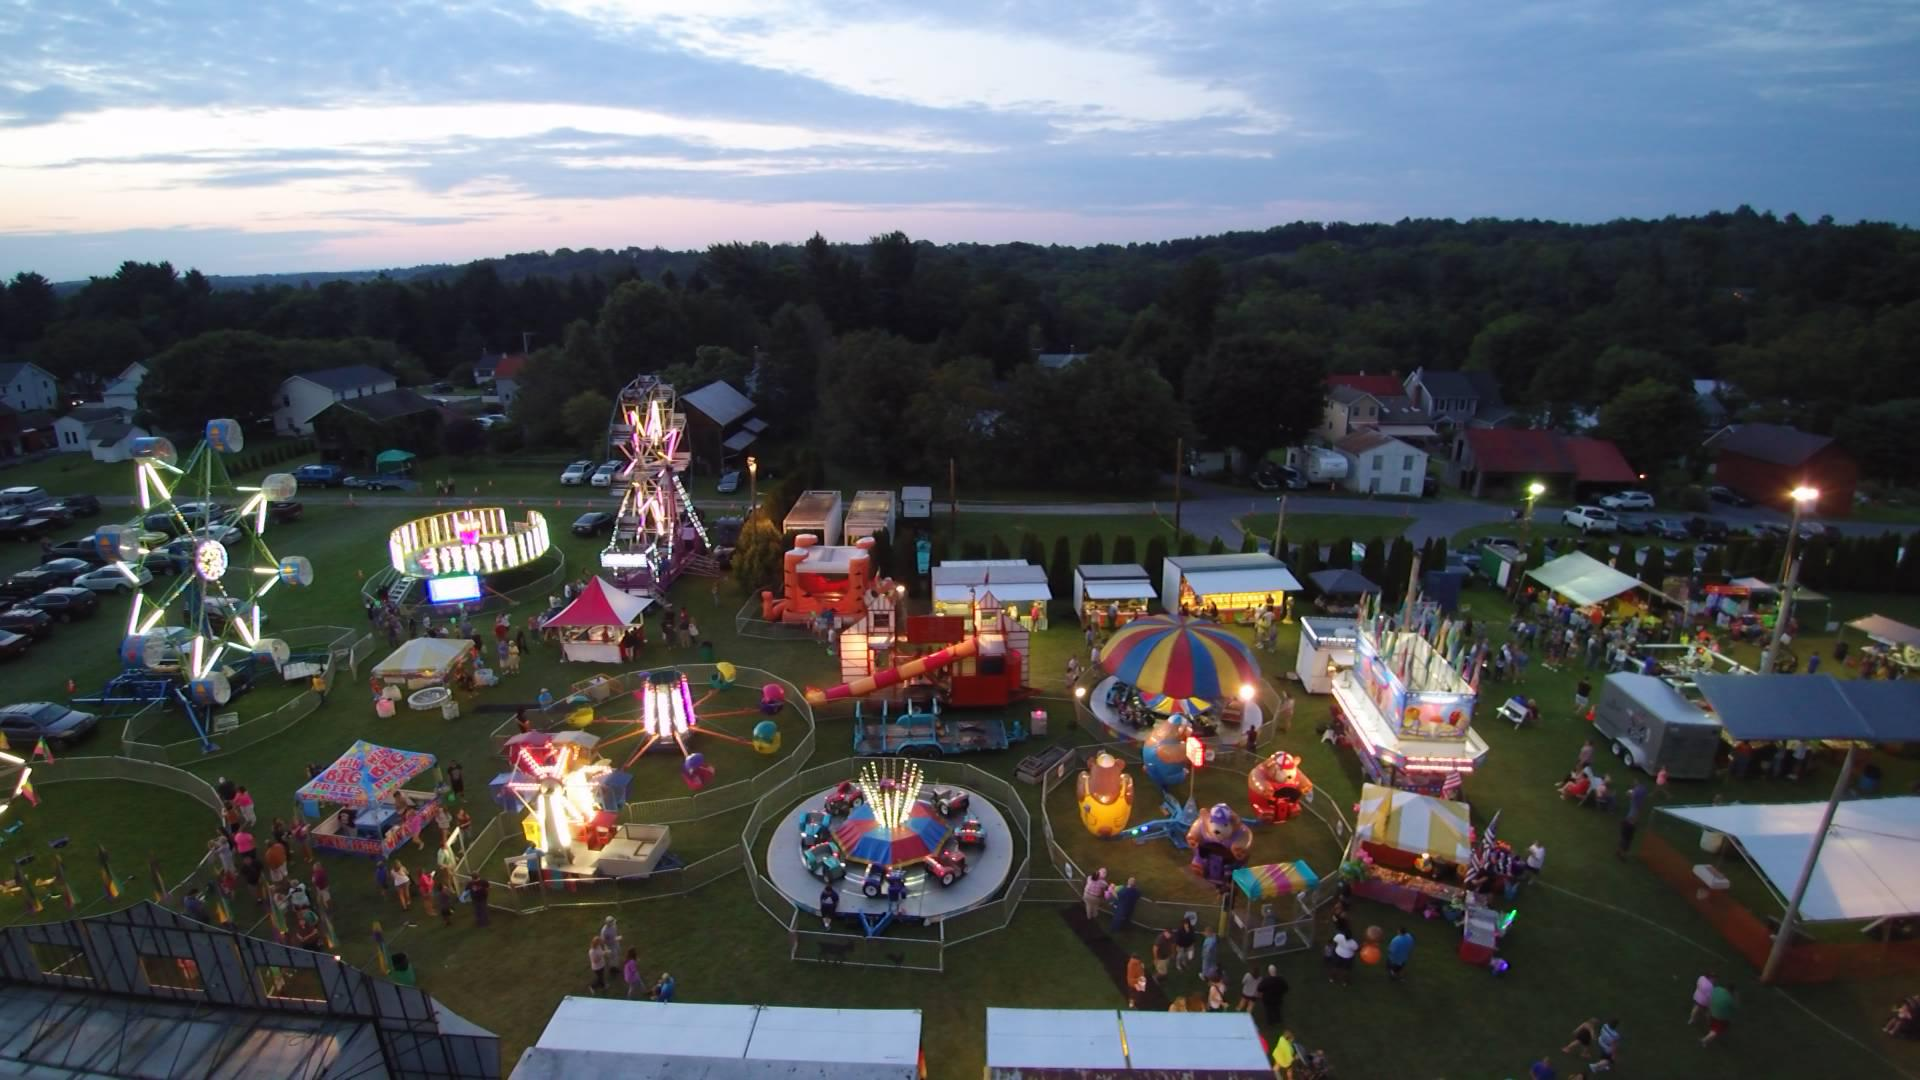 65th Annual Olde Time Festival Lisburn Fire Company thru Aug 11